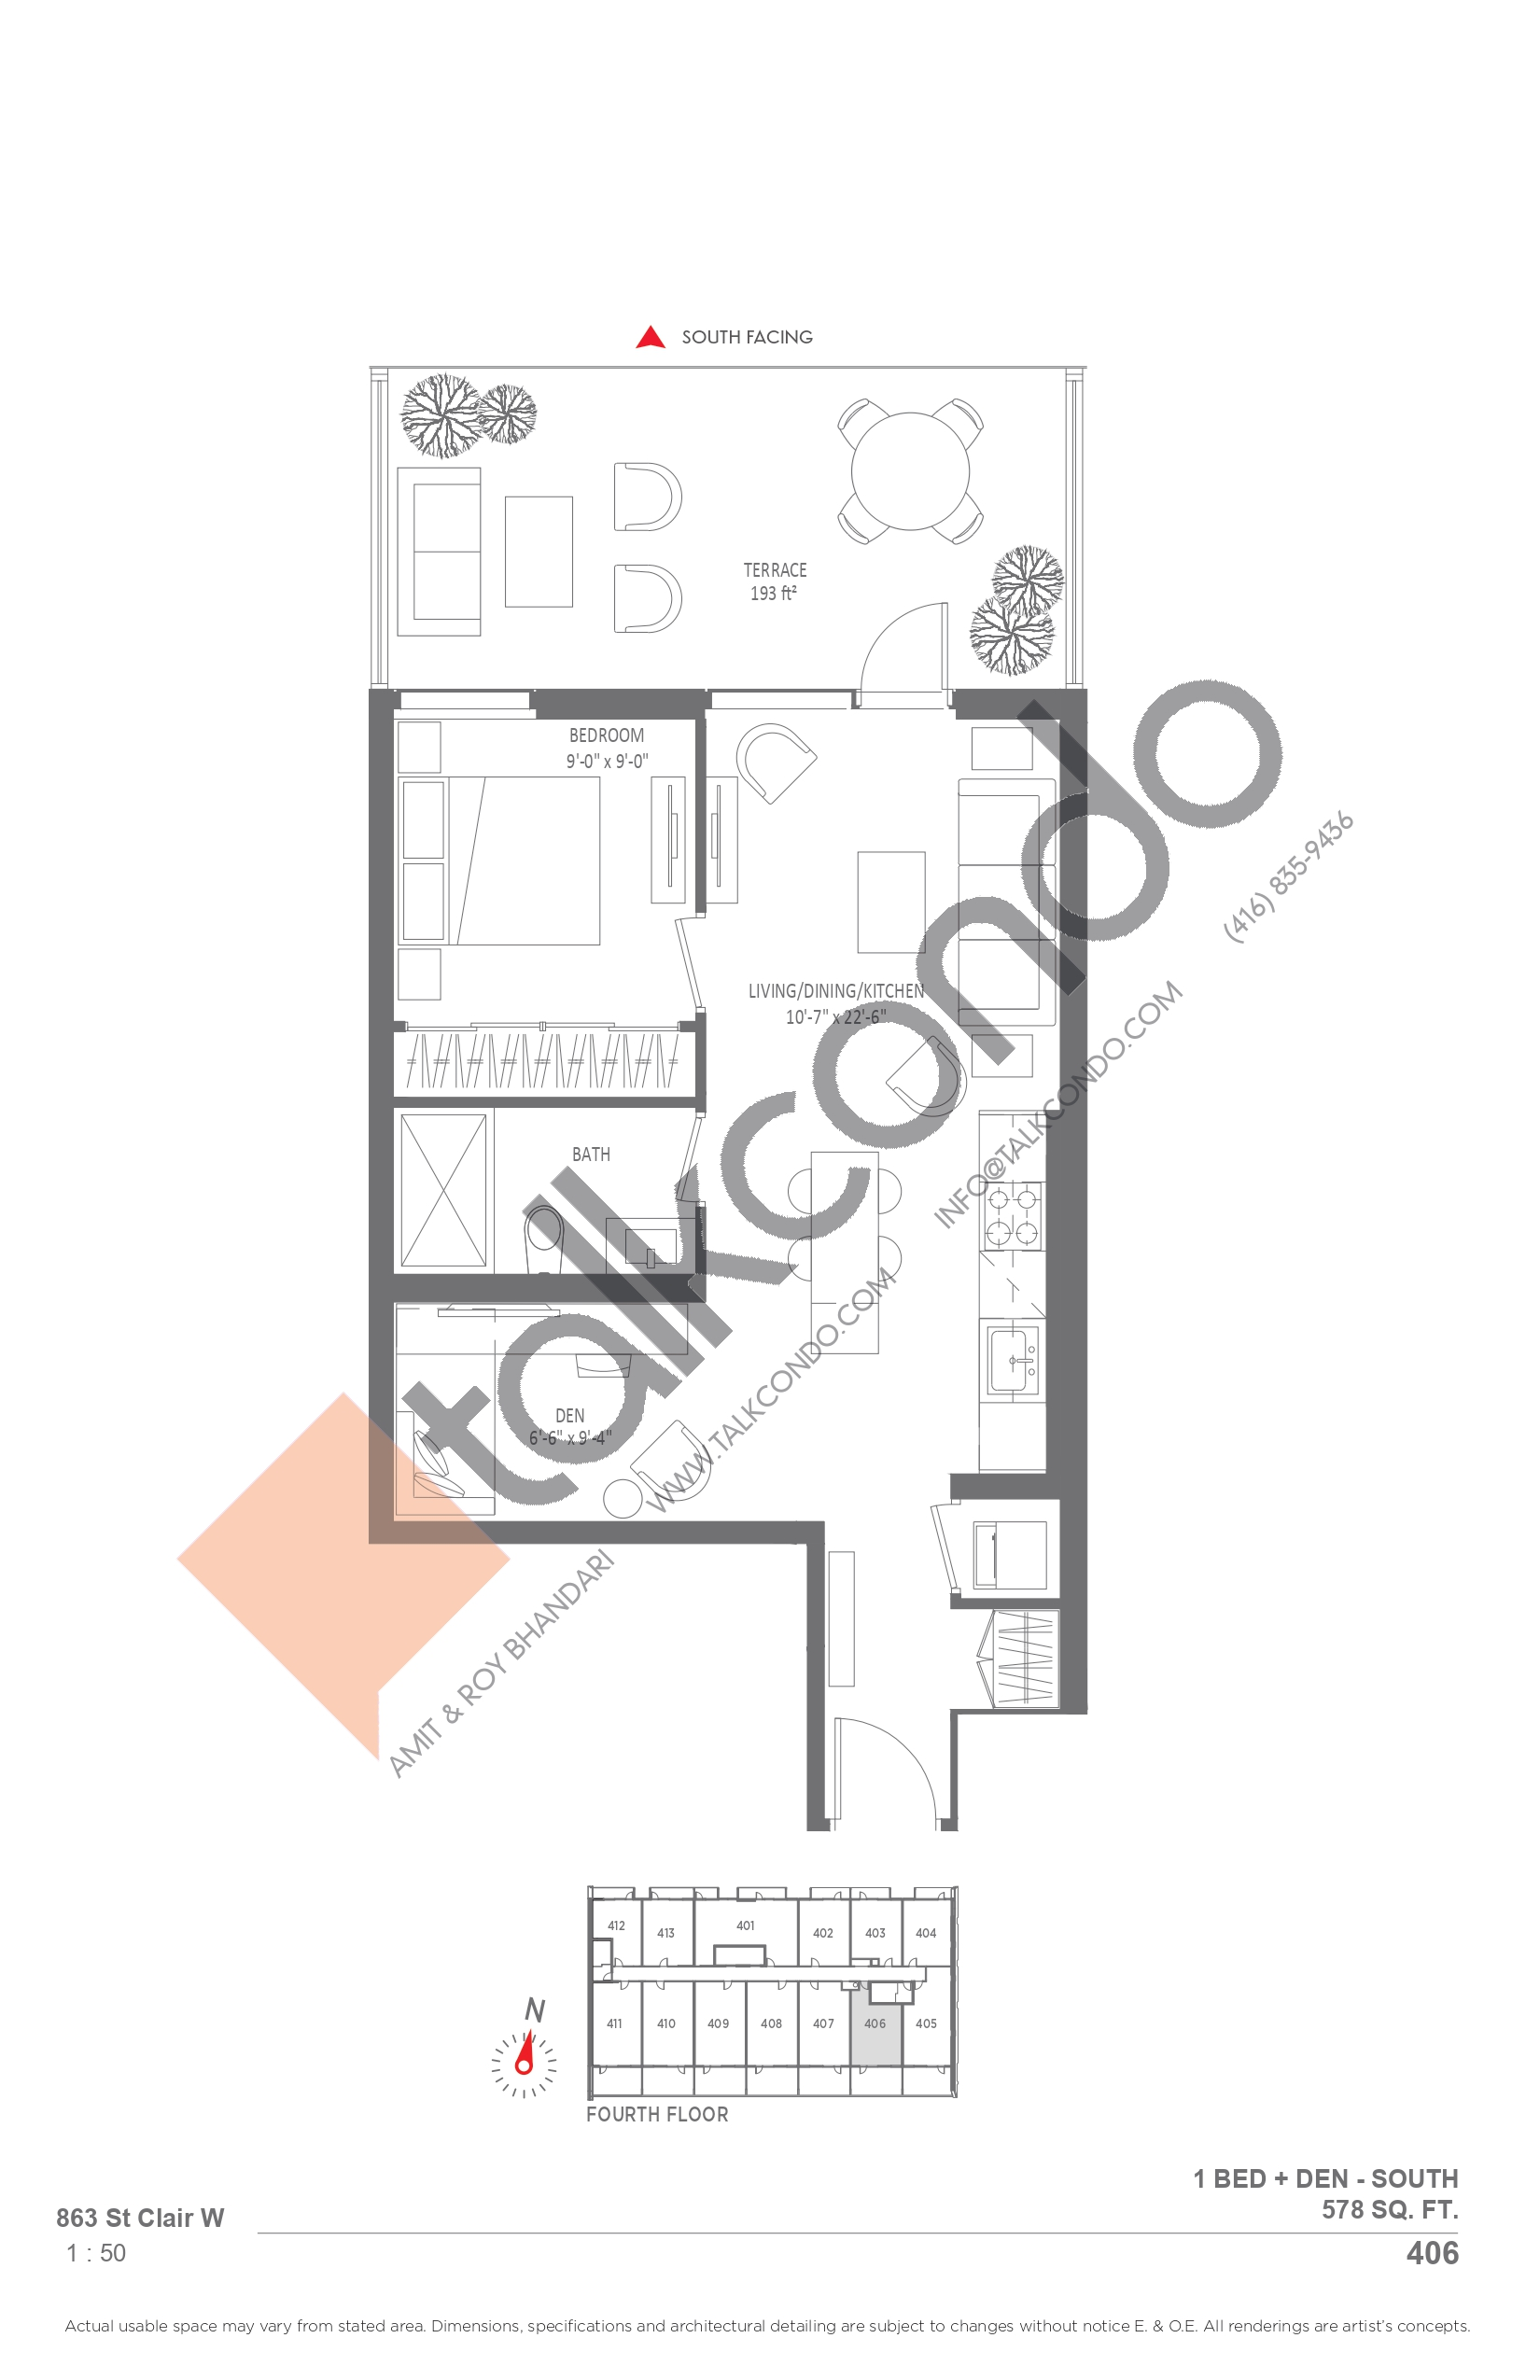 406 Floor Plan at Monza Condos - 578 sq.ft